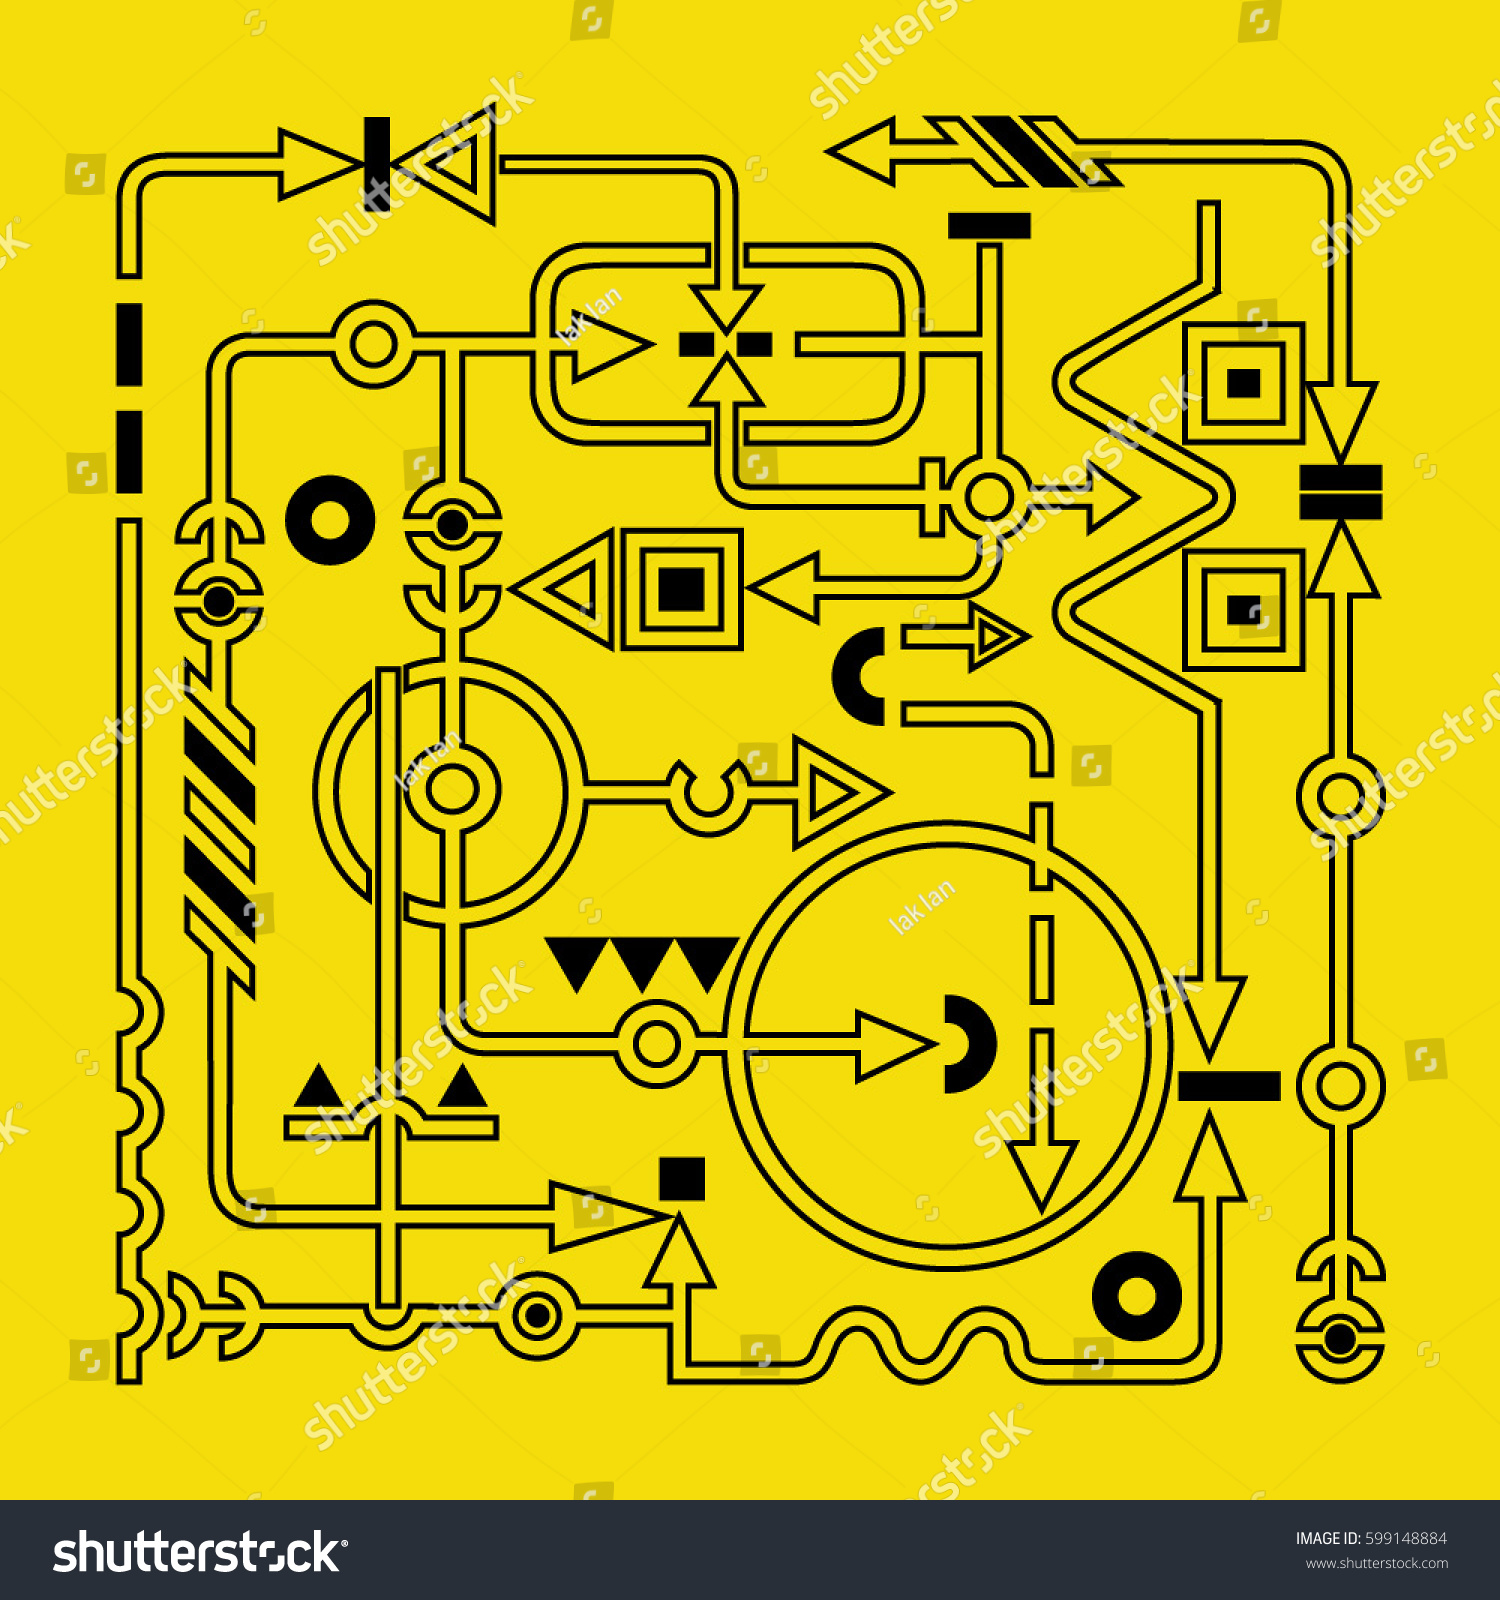 Drawing Electric Circuits Abstract Circuit Fancy Technology Vector Stock On A Yellow Background